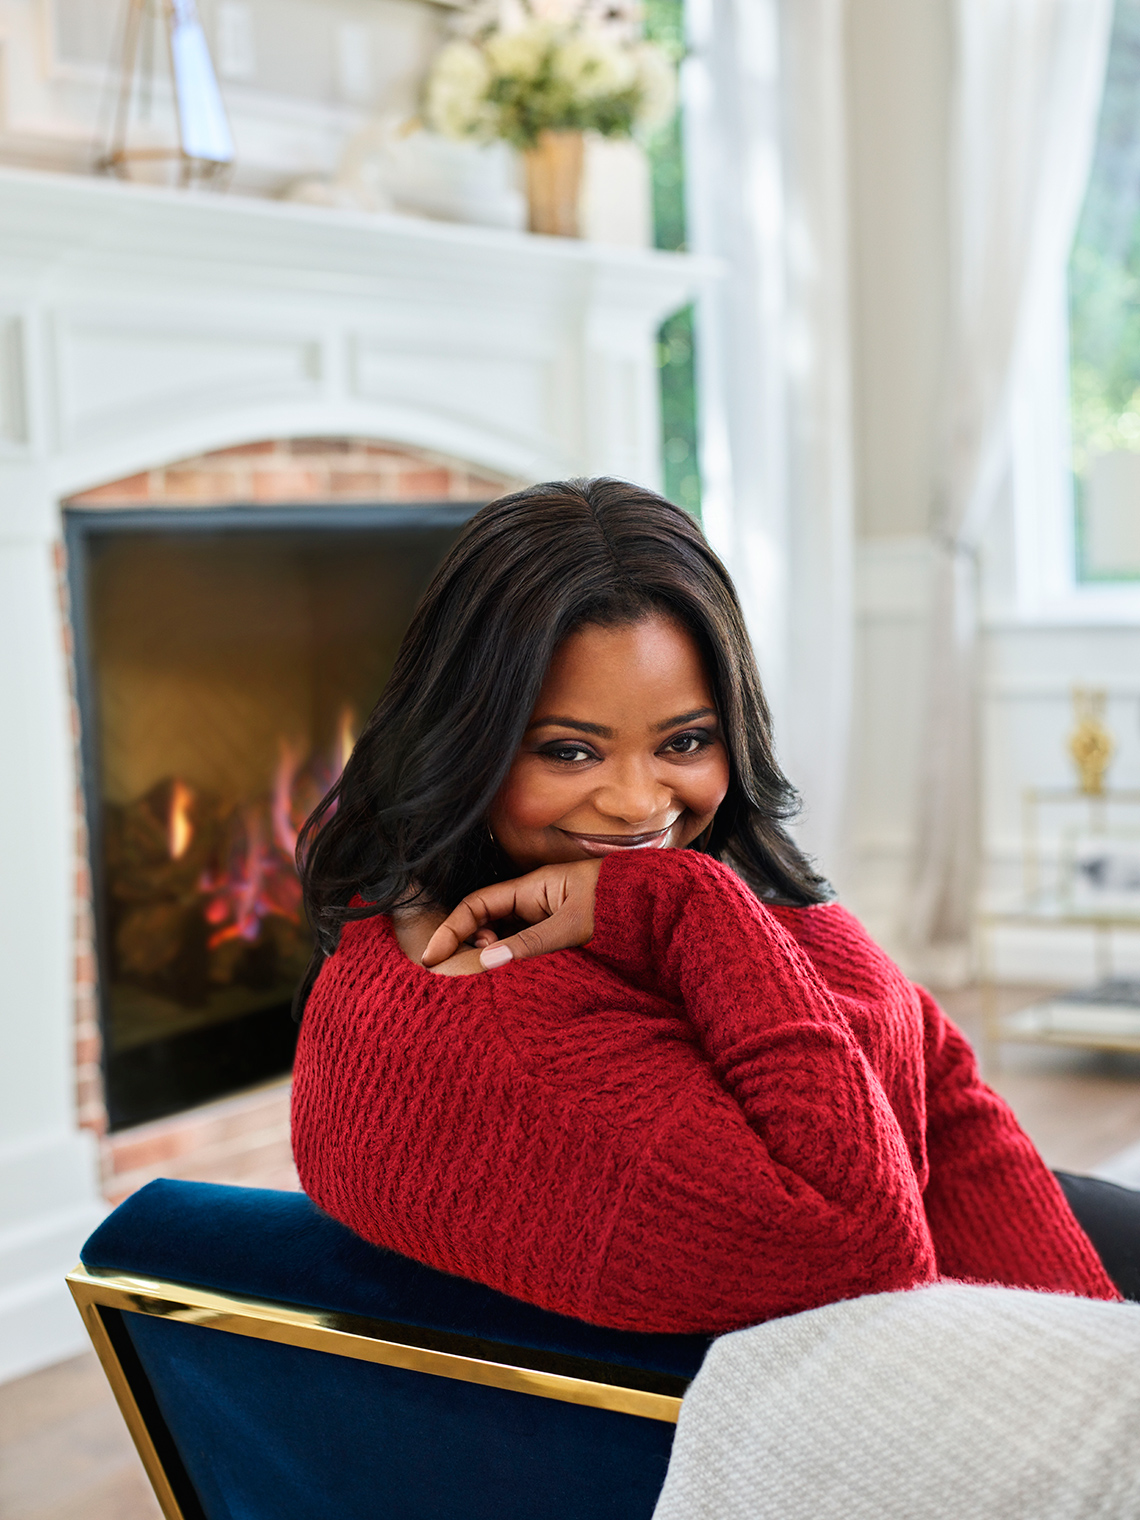 1140-dec-jan-atm-octavia-spencer-fireplace.imgcache.reva93f0e795b2fd61f248cb717a95c2a1d.jpg